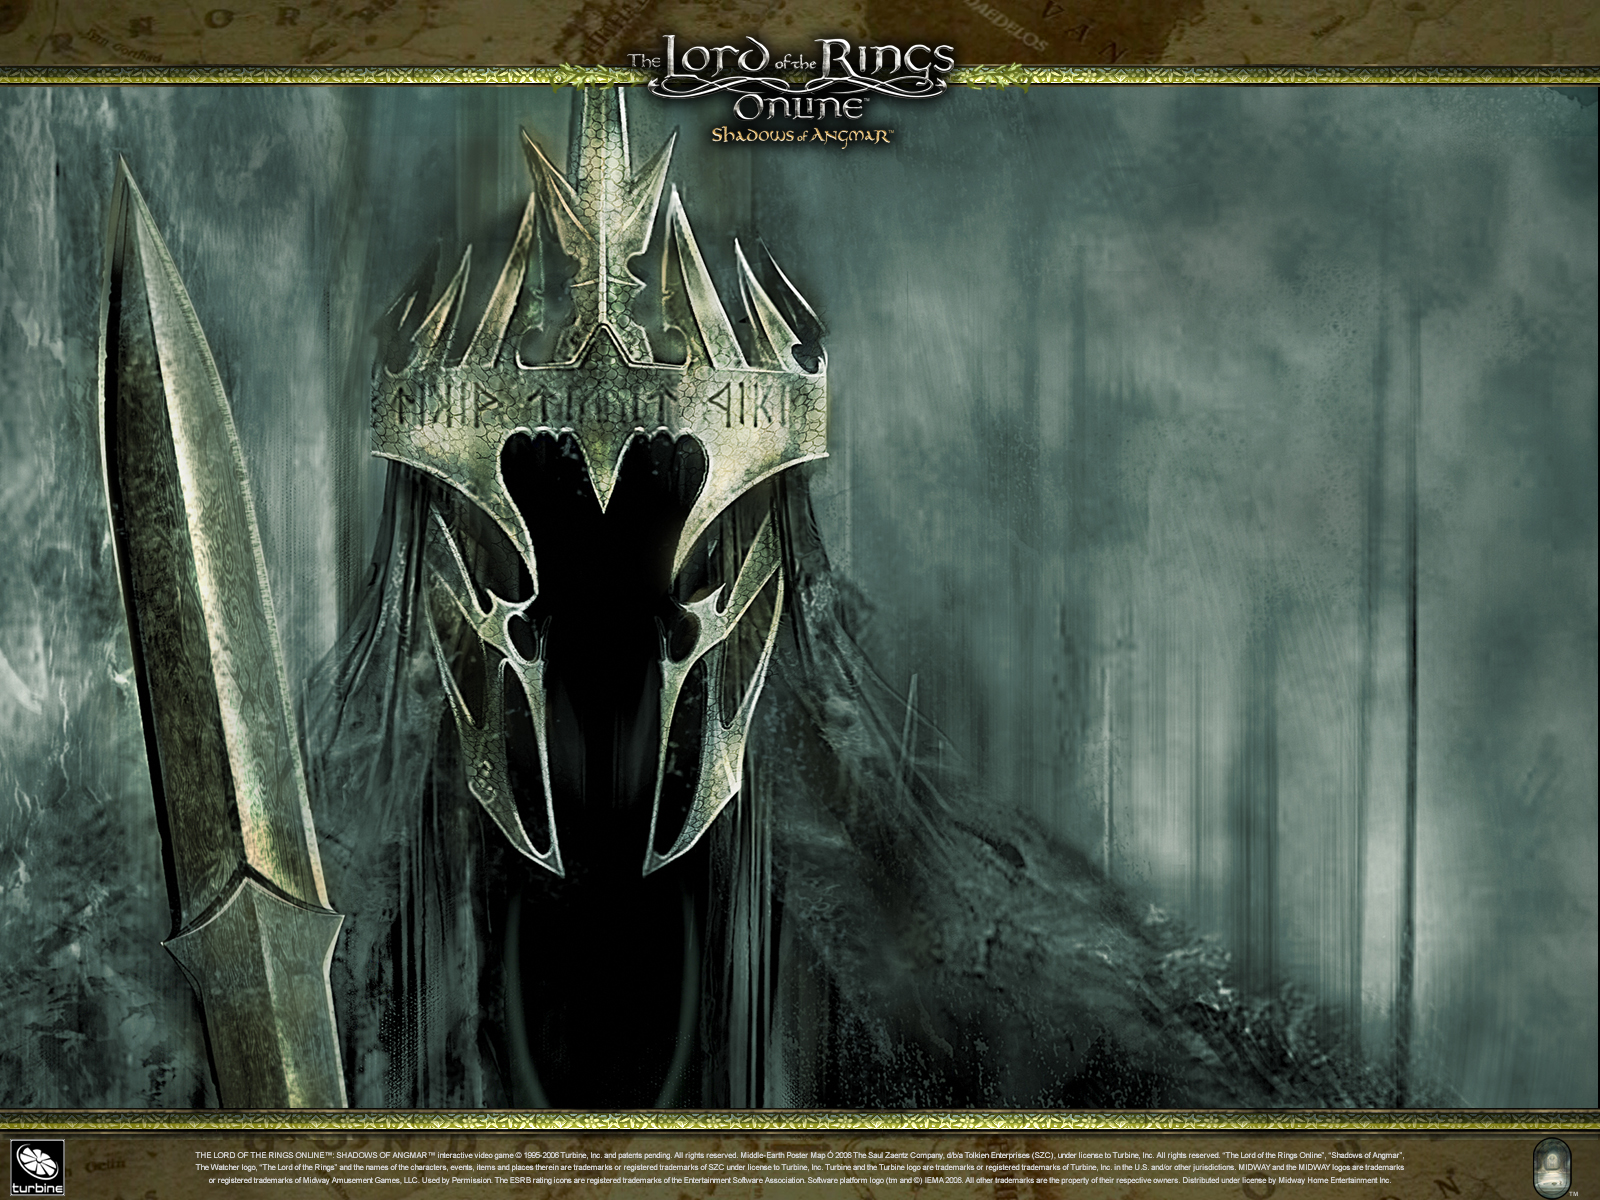 Animaatjes lord of the rings 73952 Wallpaper 1600x1200